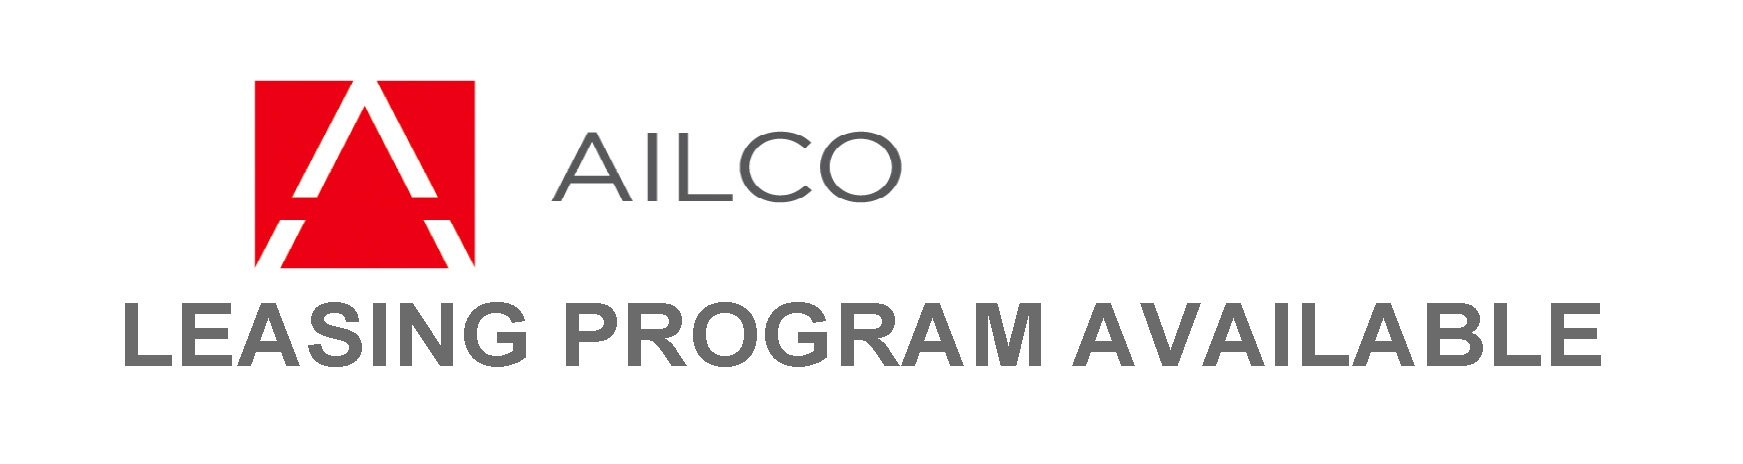 AILCO_leasing_program